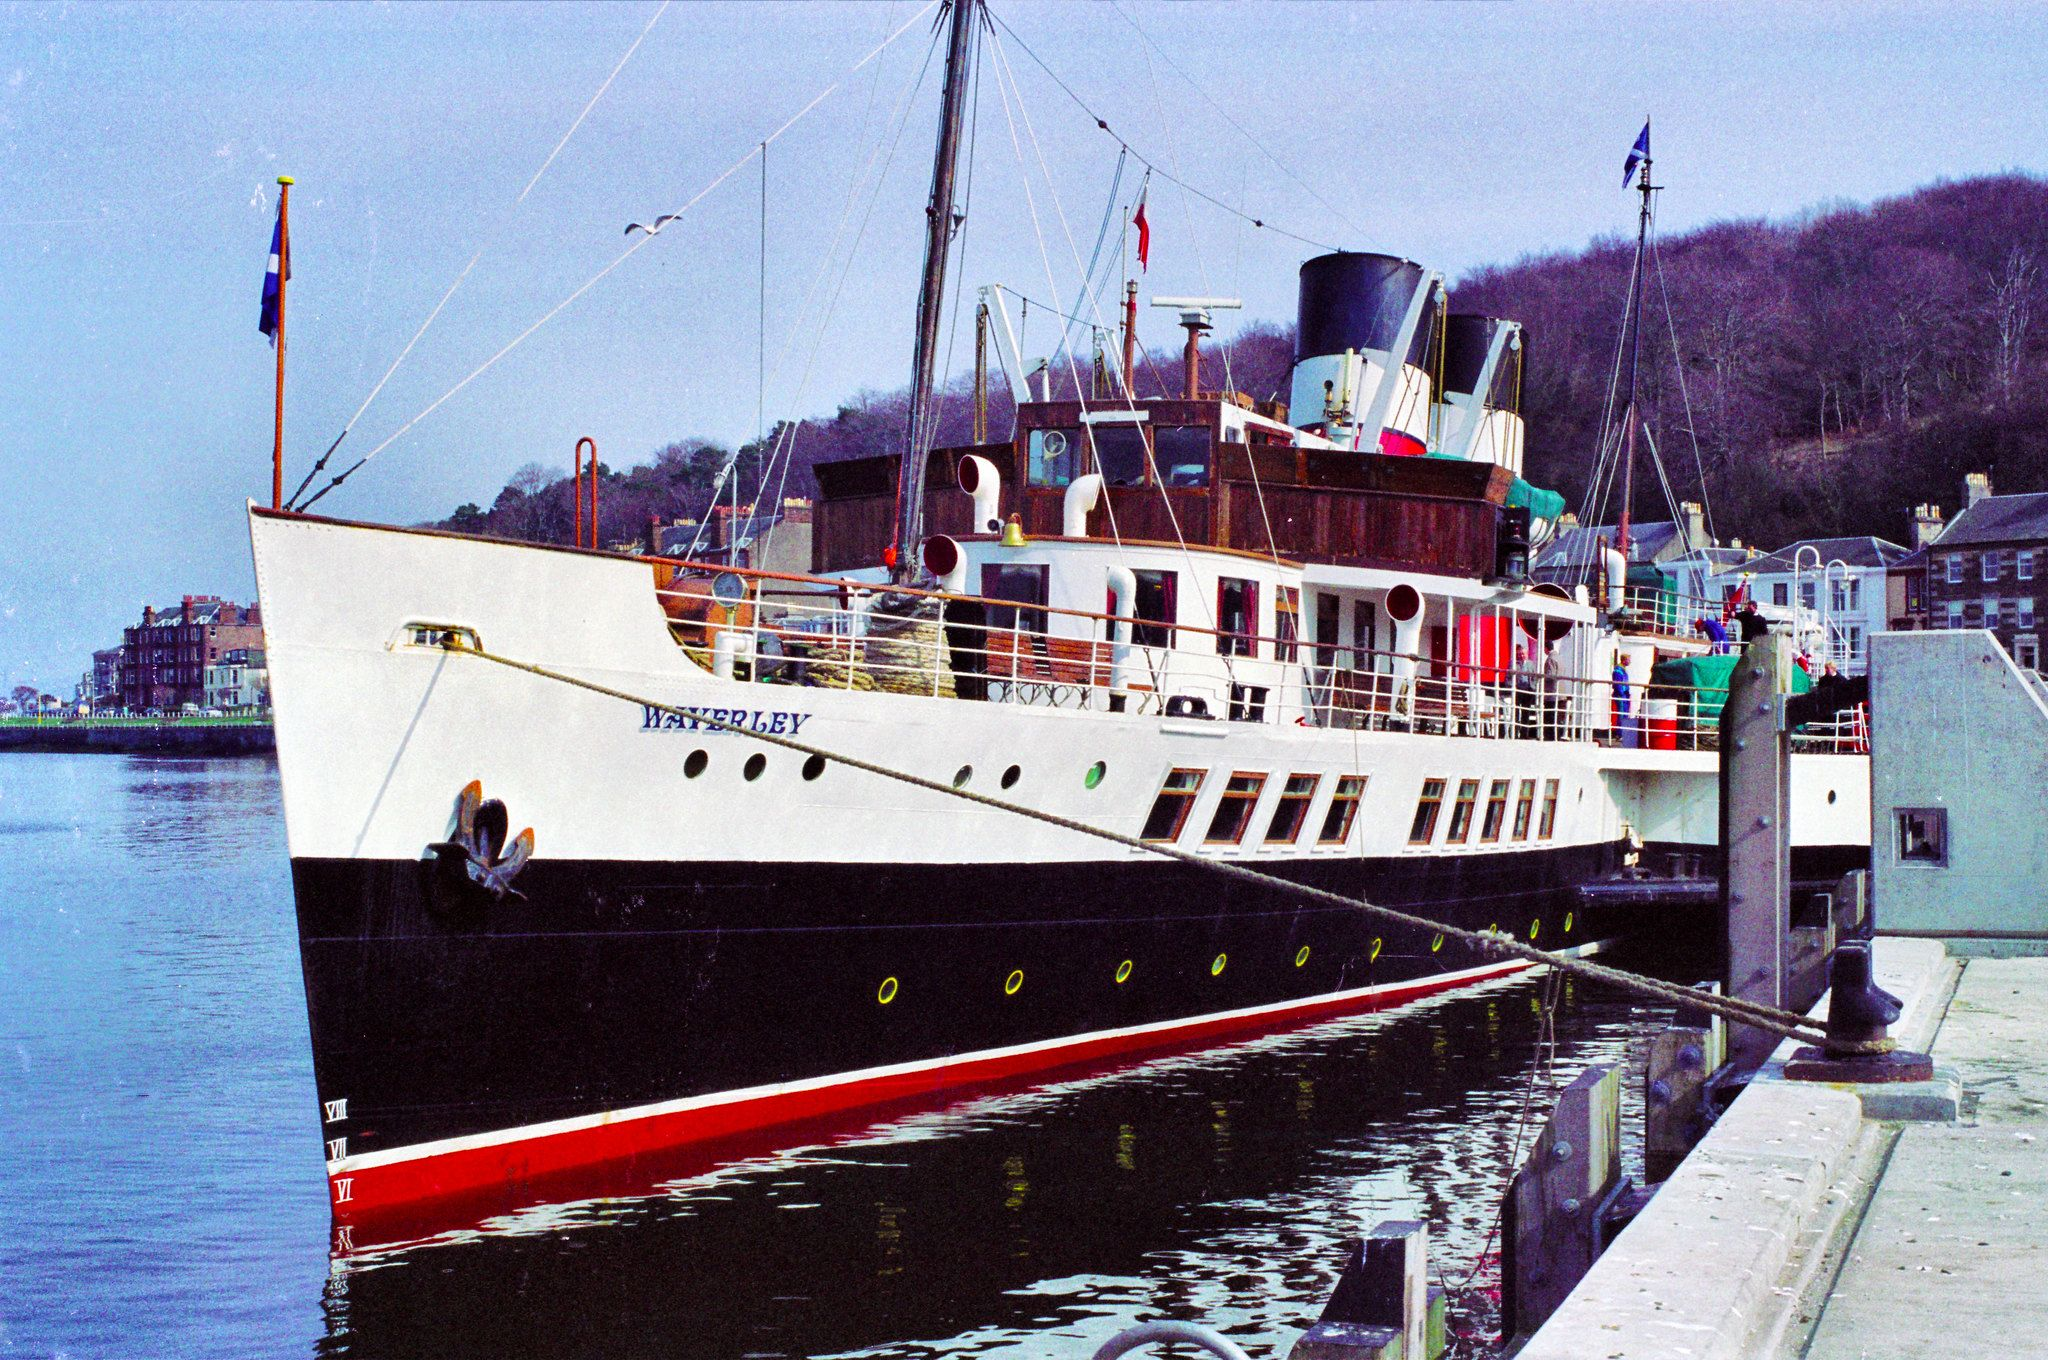 P S Waverley At Rothesay Pier Boat Trips Cruise Ship River Boat